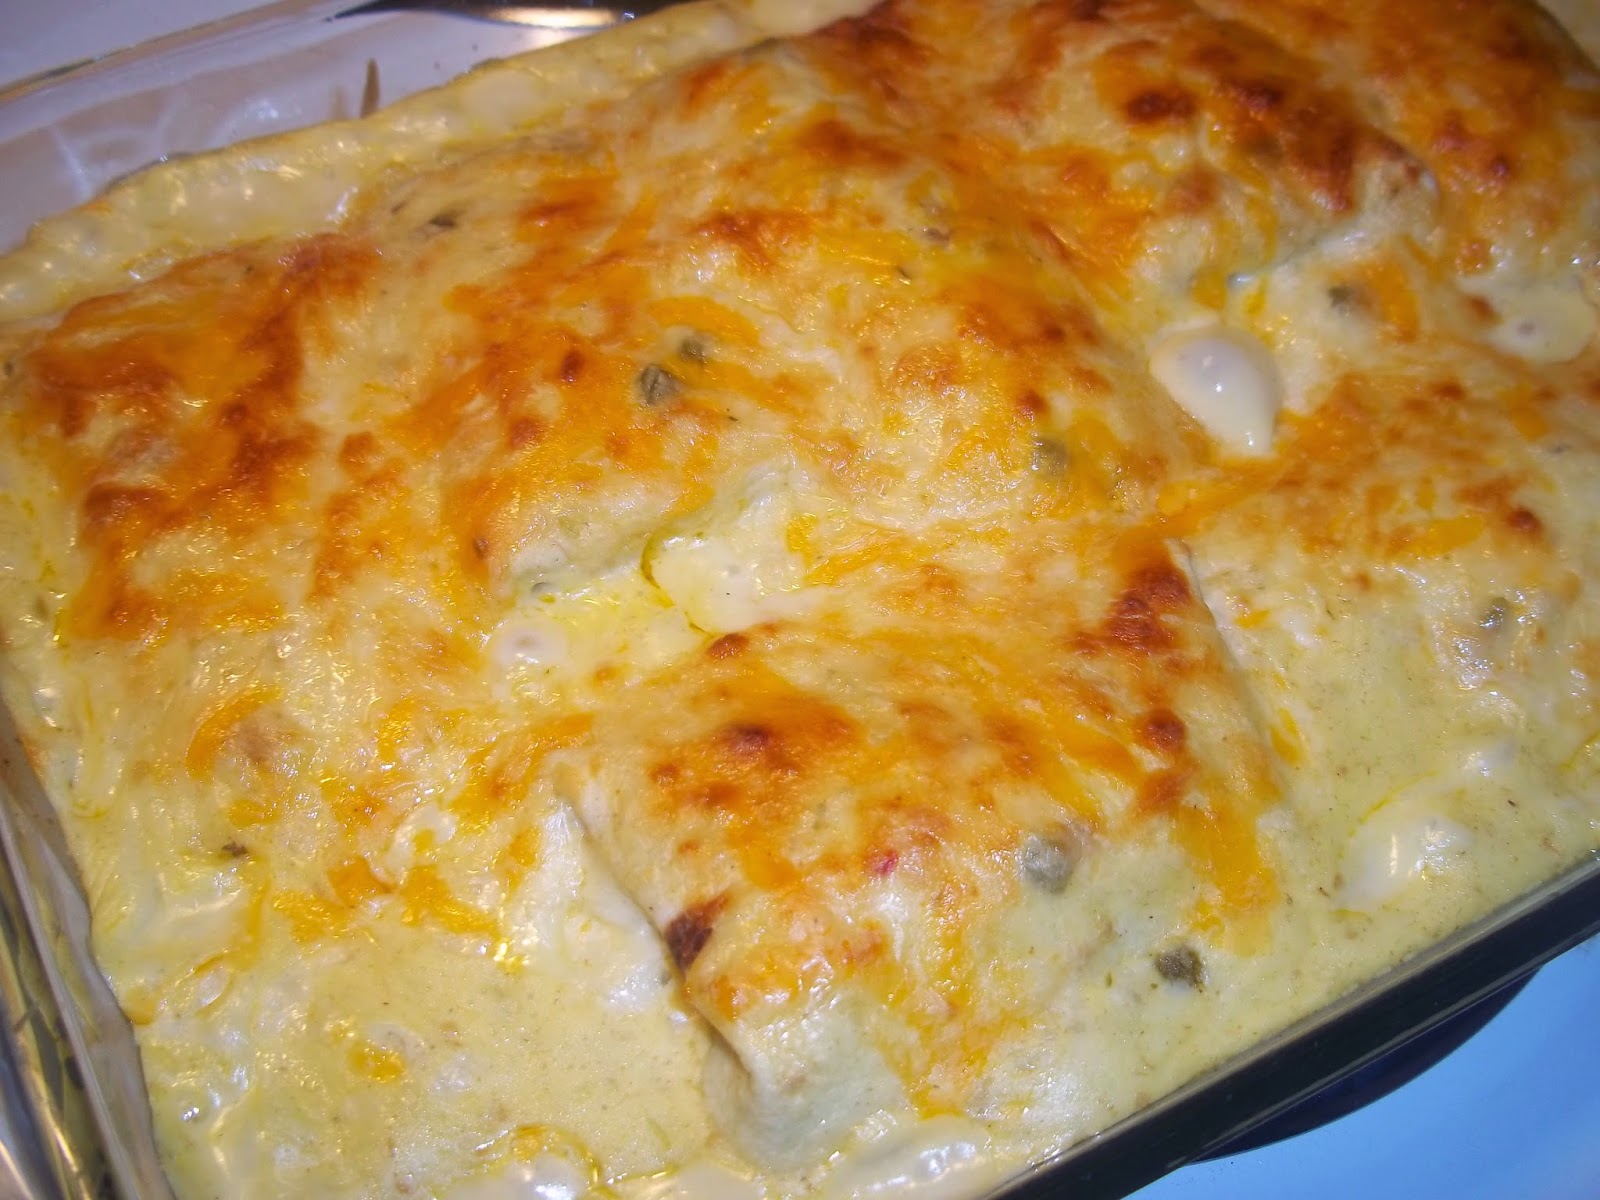 The Daily Smash: Green Chili Chicken Enchiladas